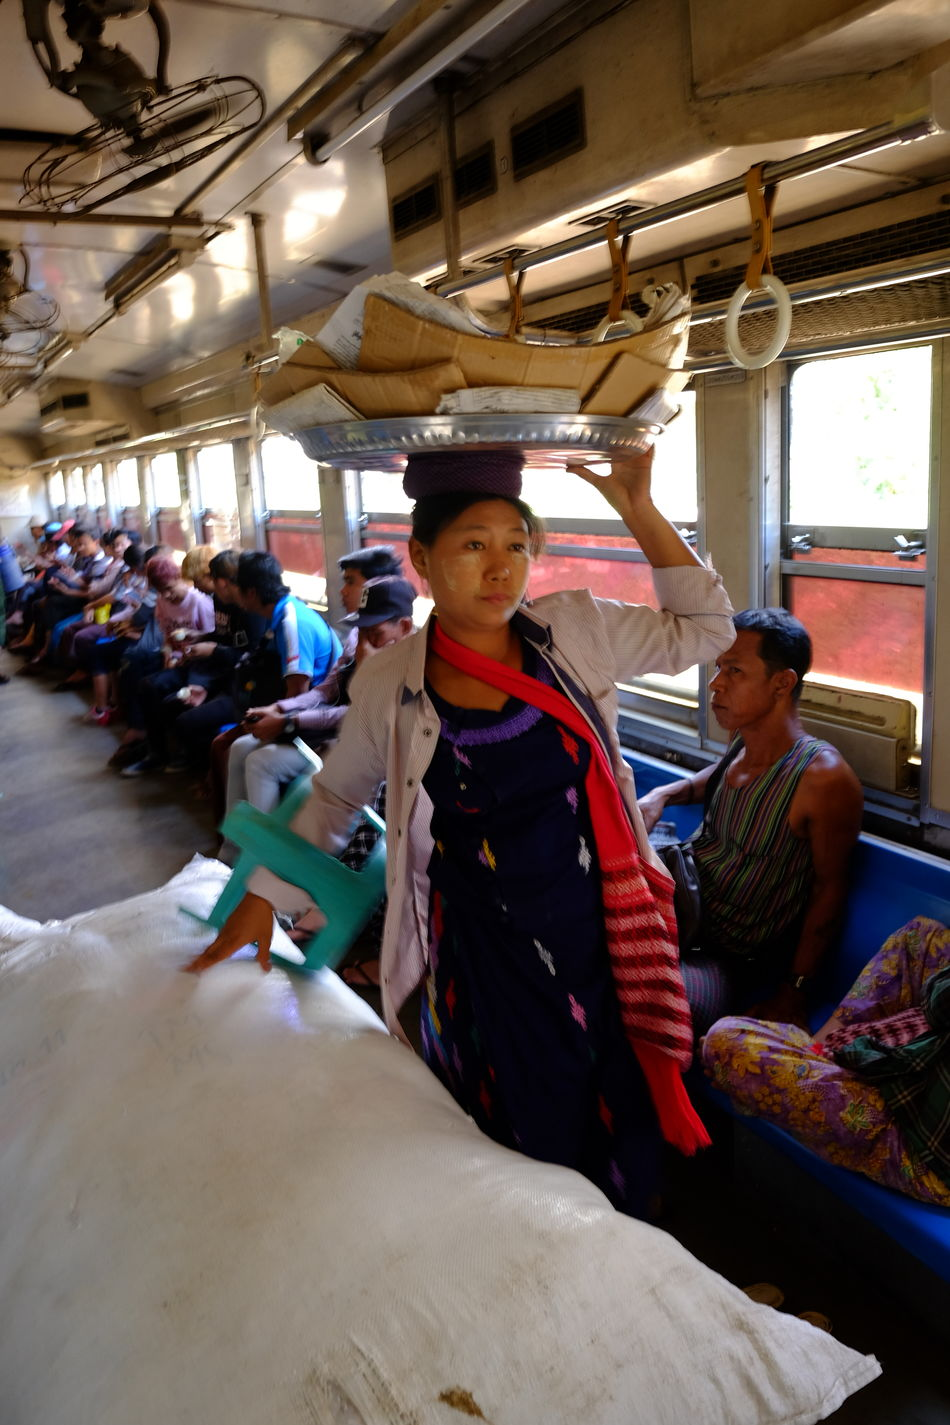 Woman Selling on the Yangon Circular Train Built Structure City City Life City Lifestyle Composition Full Frame Indoor Photography Large Group Of People Making A Living Myanmar Occupation Portrait Of A Woman Railway Carriage Real People Selling Standing Traditional Clothing Traditional Culture Travel Destination Woman Woman Portrait Working Yangon Yangon Circular Railway Yangon Circular Train